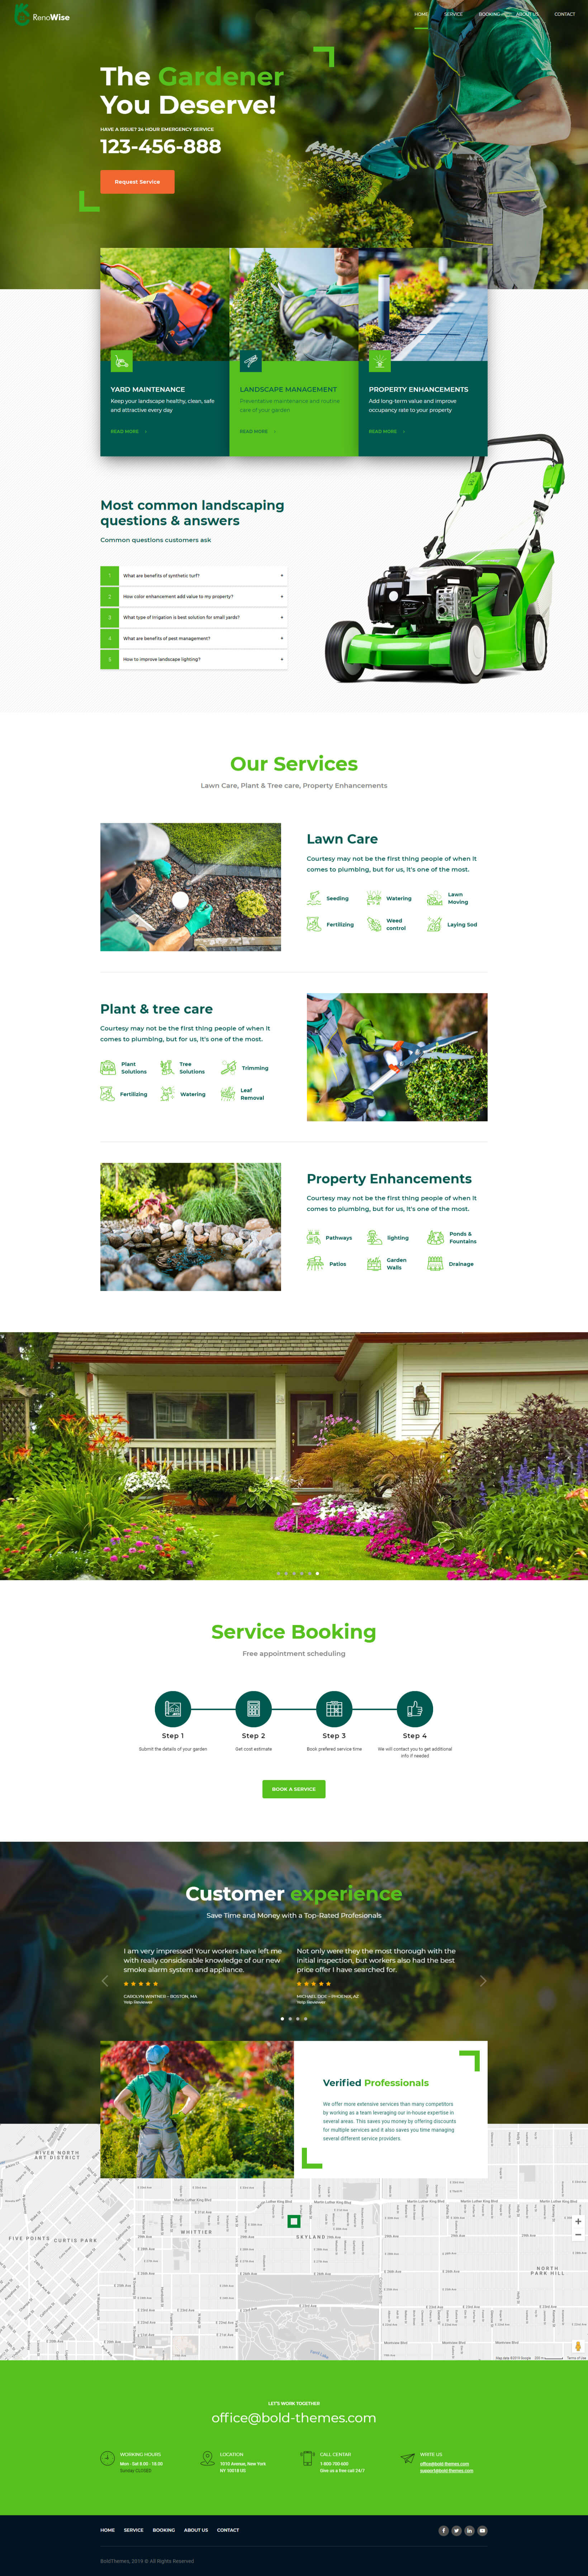 https://renowise.bold-themes.com/wp-content/uploads/2019/06/Landscaping.jpg